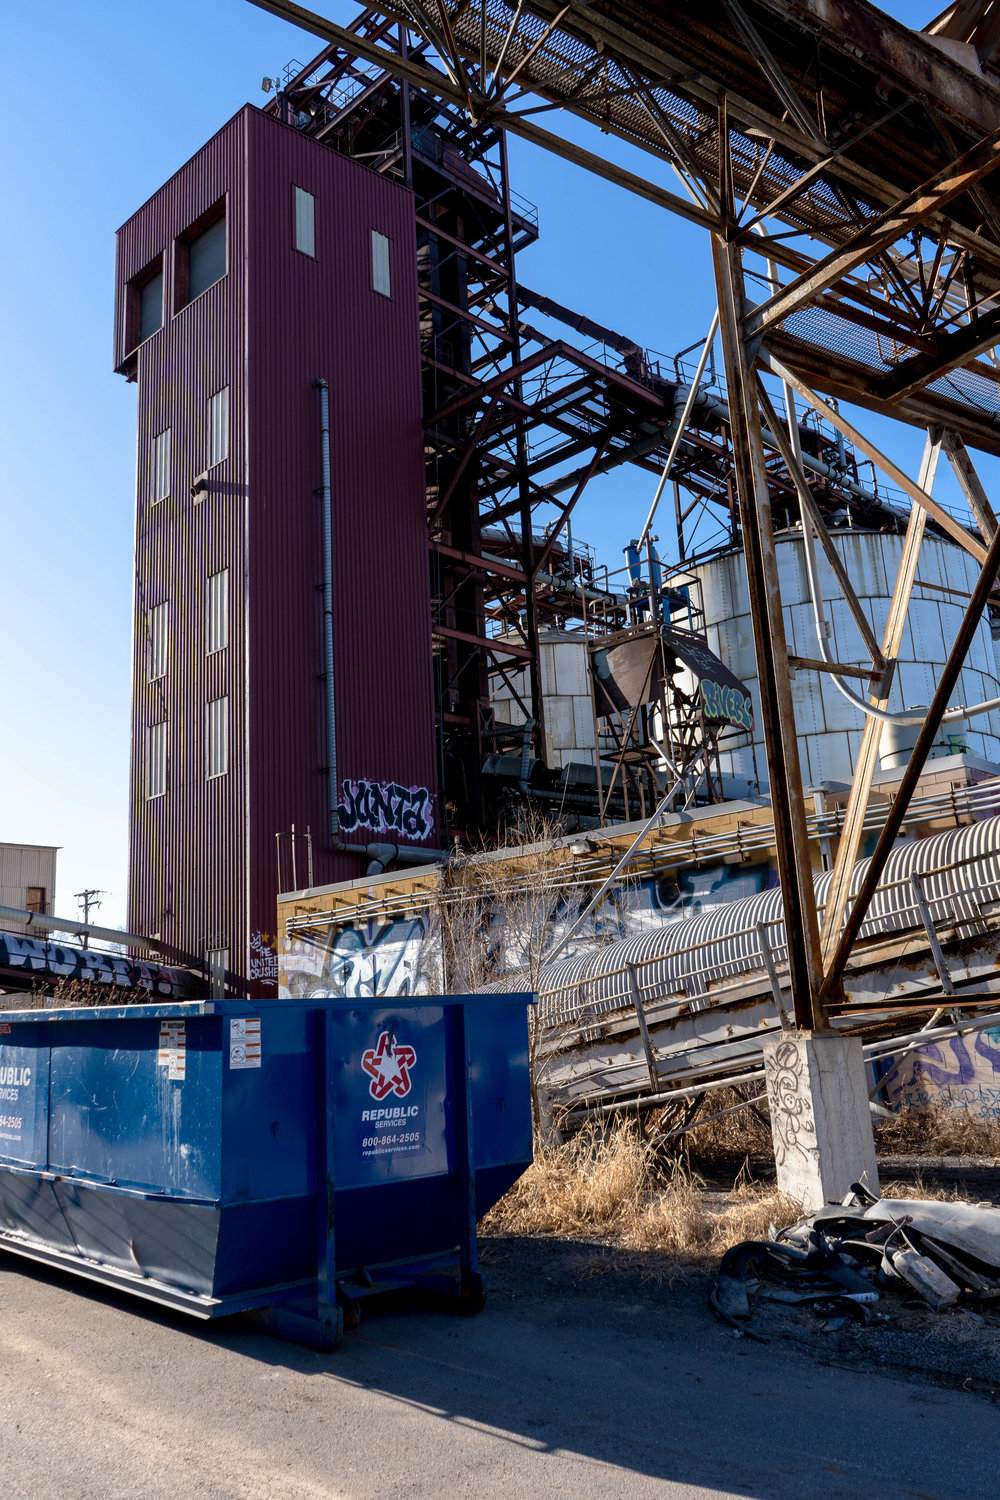 Unoccupied silos at the Upper Harbor Terminal site.